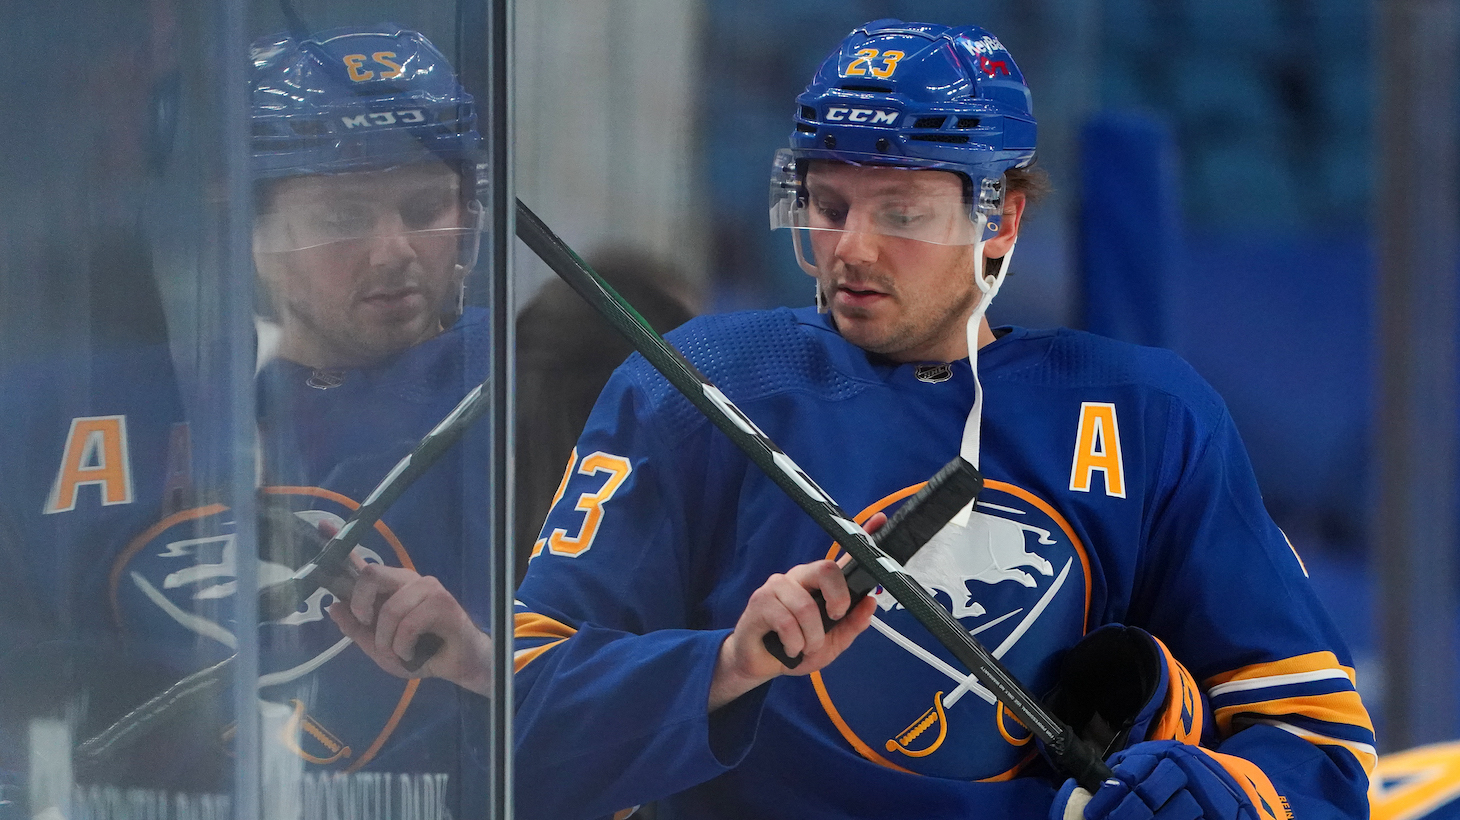 BUFFALO, NY - FEBRUARY 15: Sam Reinhart #23 of the Buffalo Sabres before the game against the New York Islanders at KeyBank Center on February 15, 2021 in Buffalo, New York. (Photo by Kevin Hoffman/Getty Images)